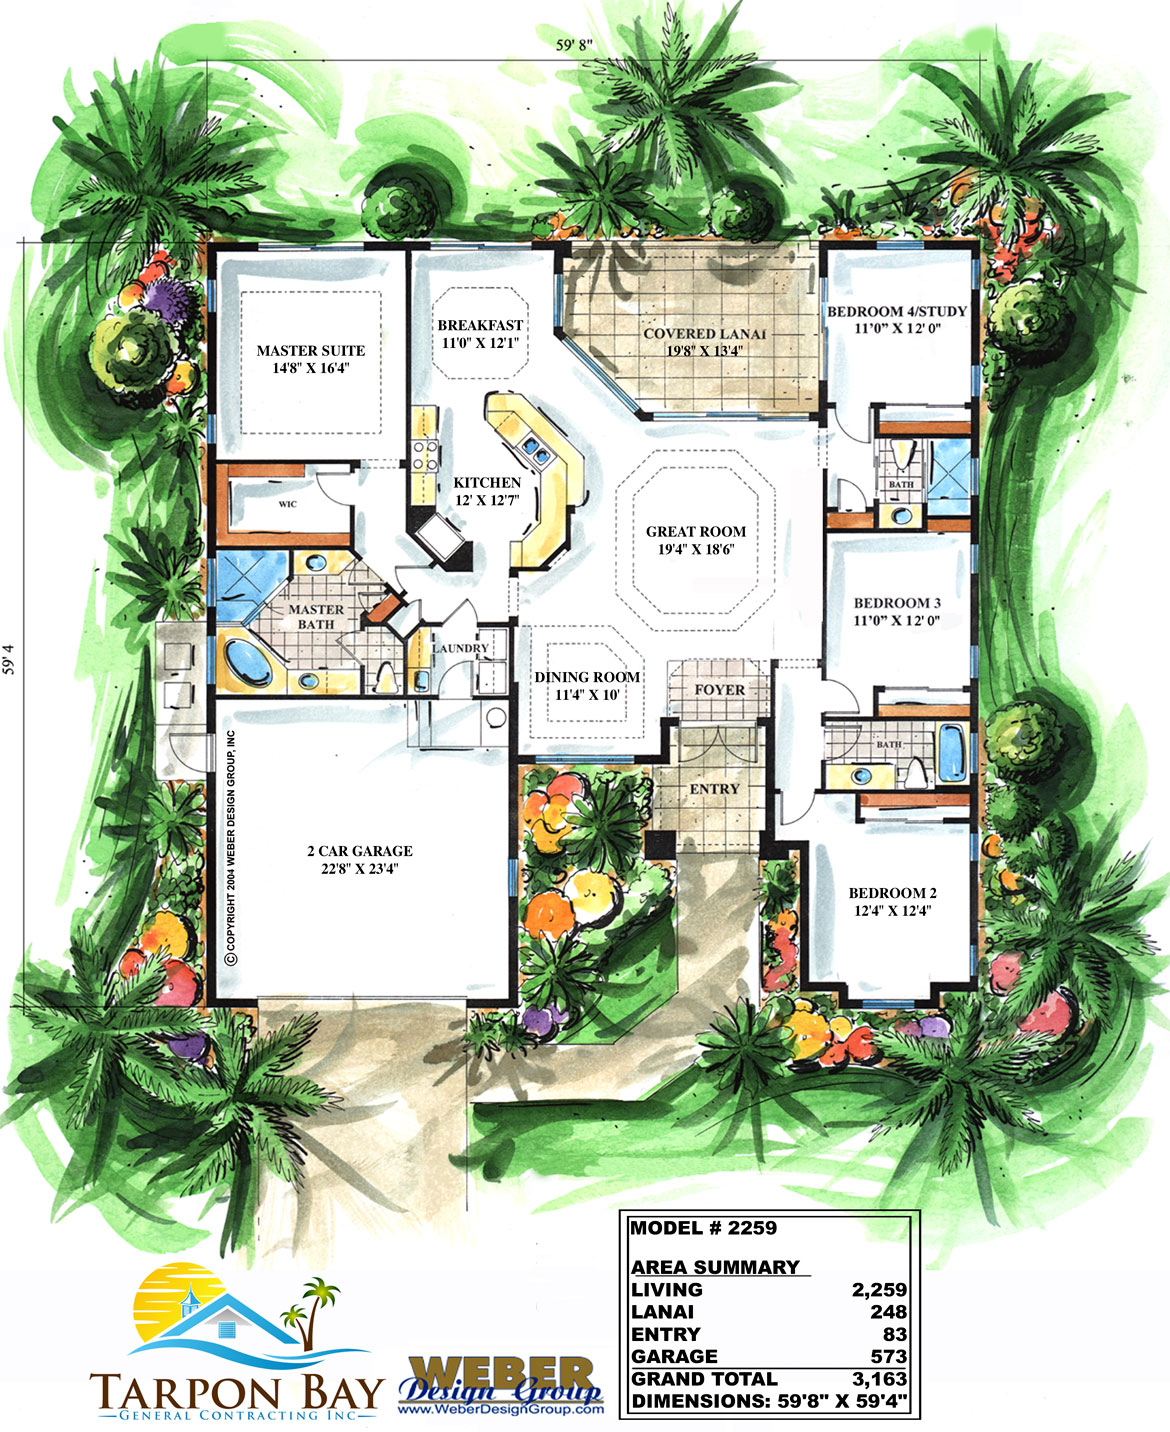 Home Model 2259 - Floor Plan